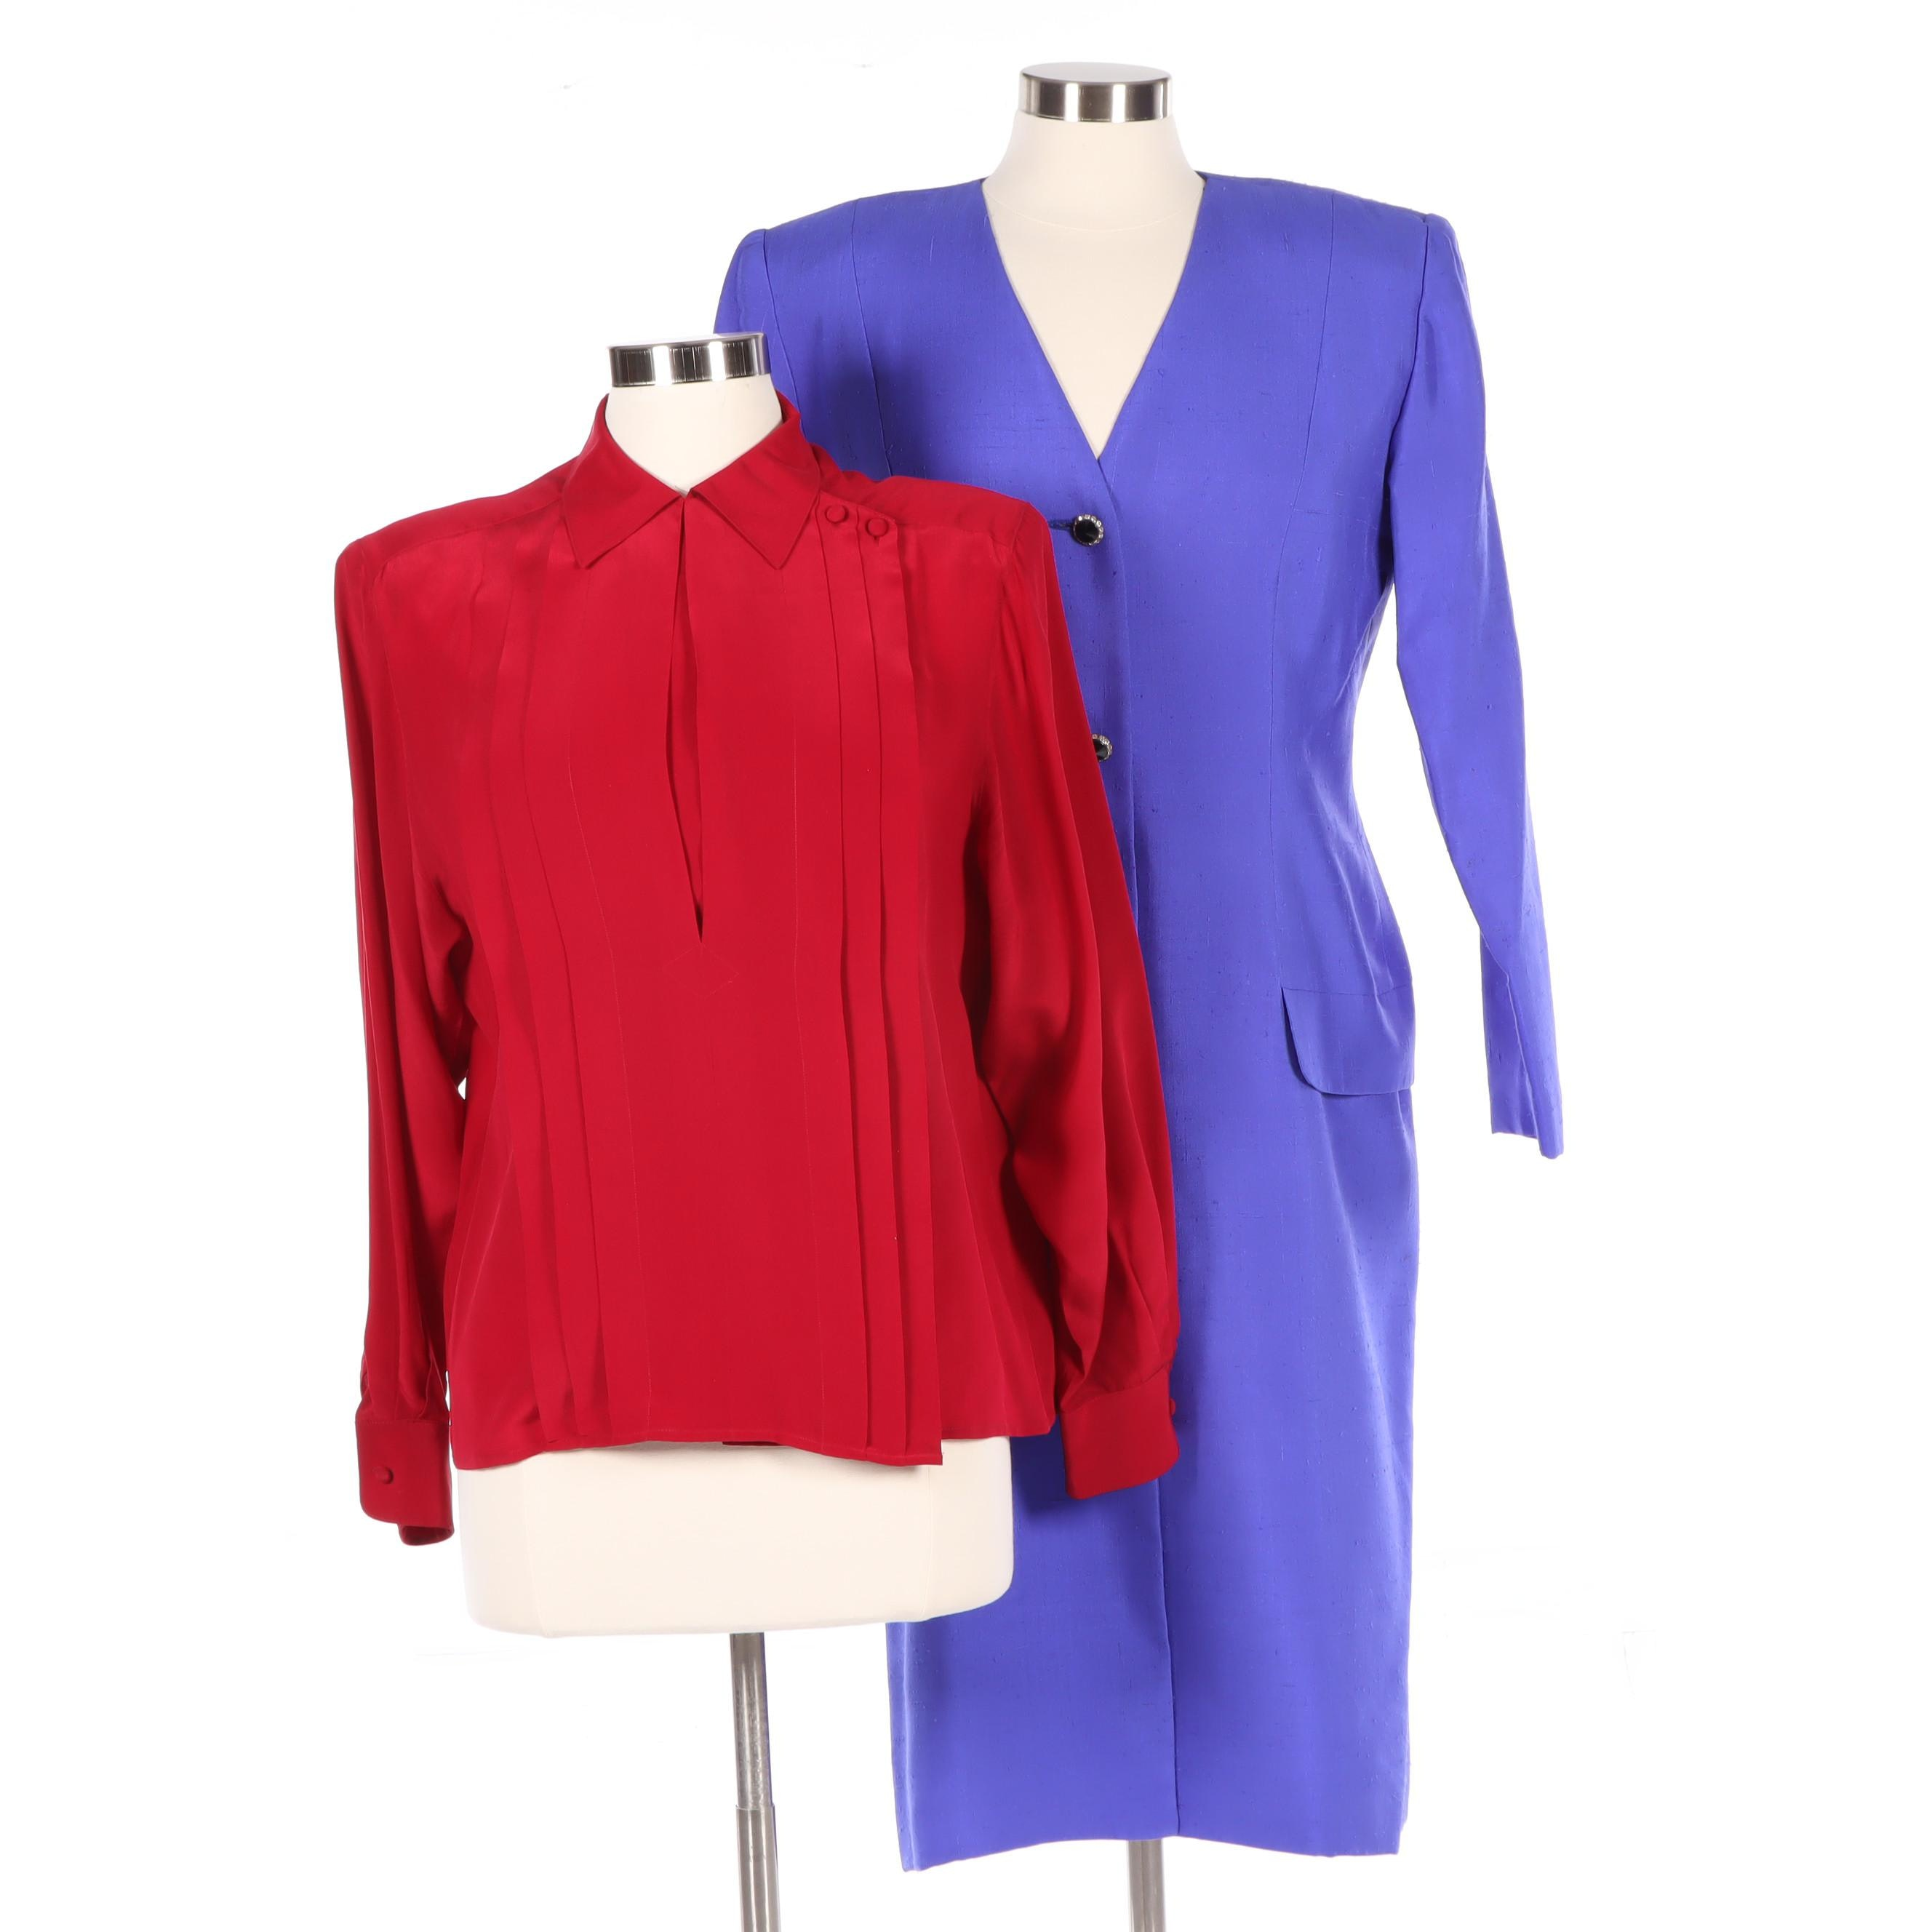 Christian Dior Red Silk Blouse and Periwinkle Silk Linen Dress, Vintage